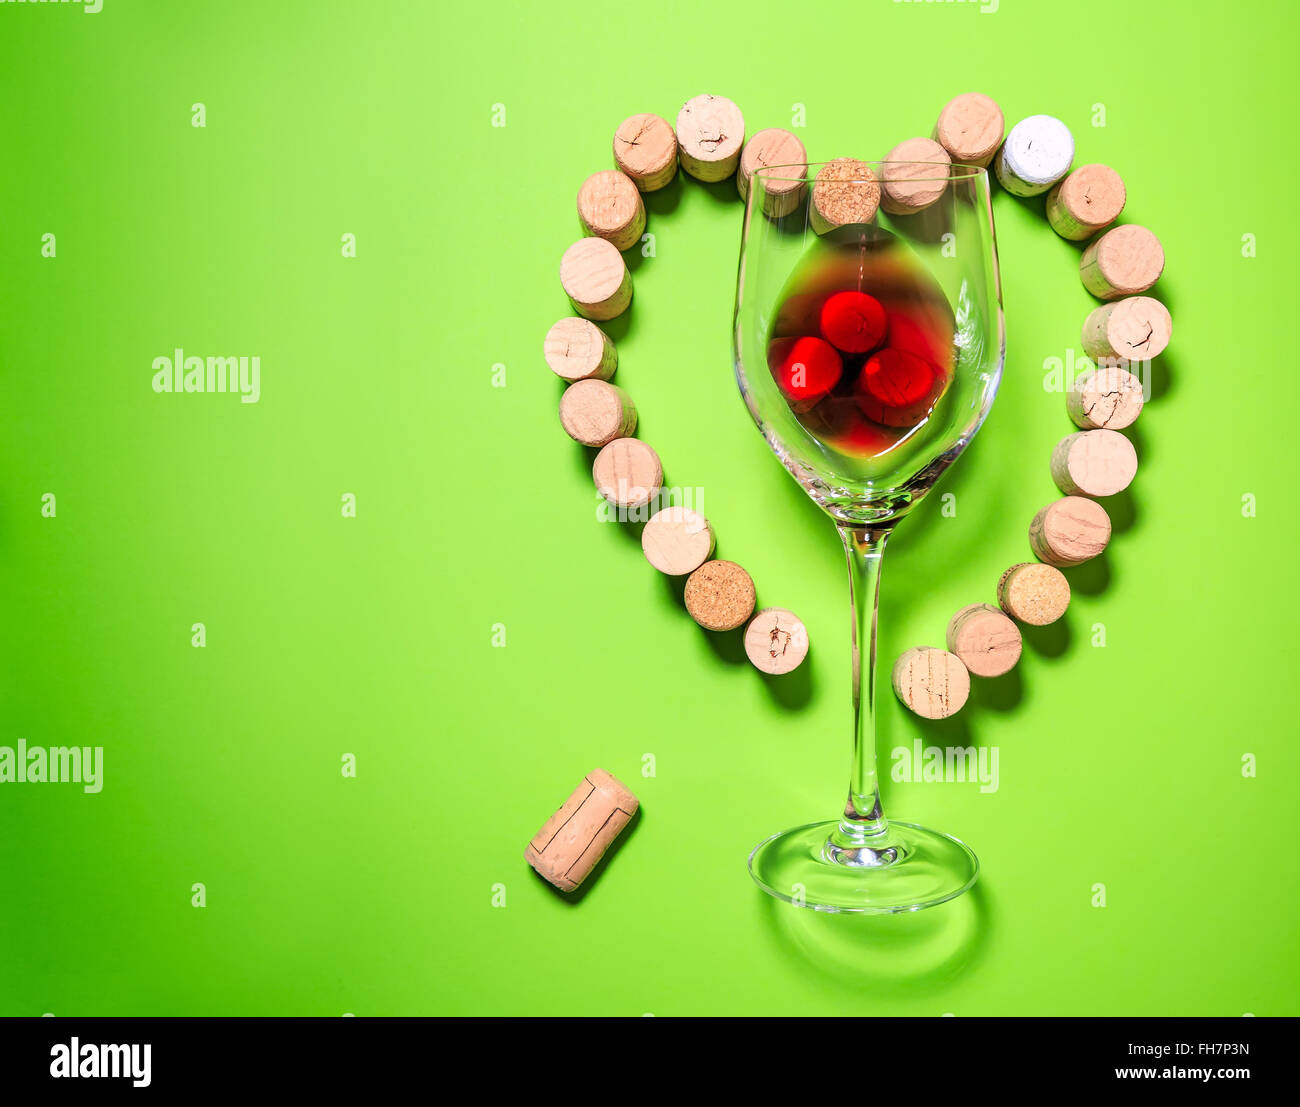 Glass of wine with cork stoppers - Stock Image